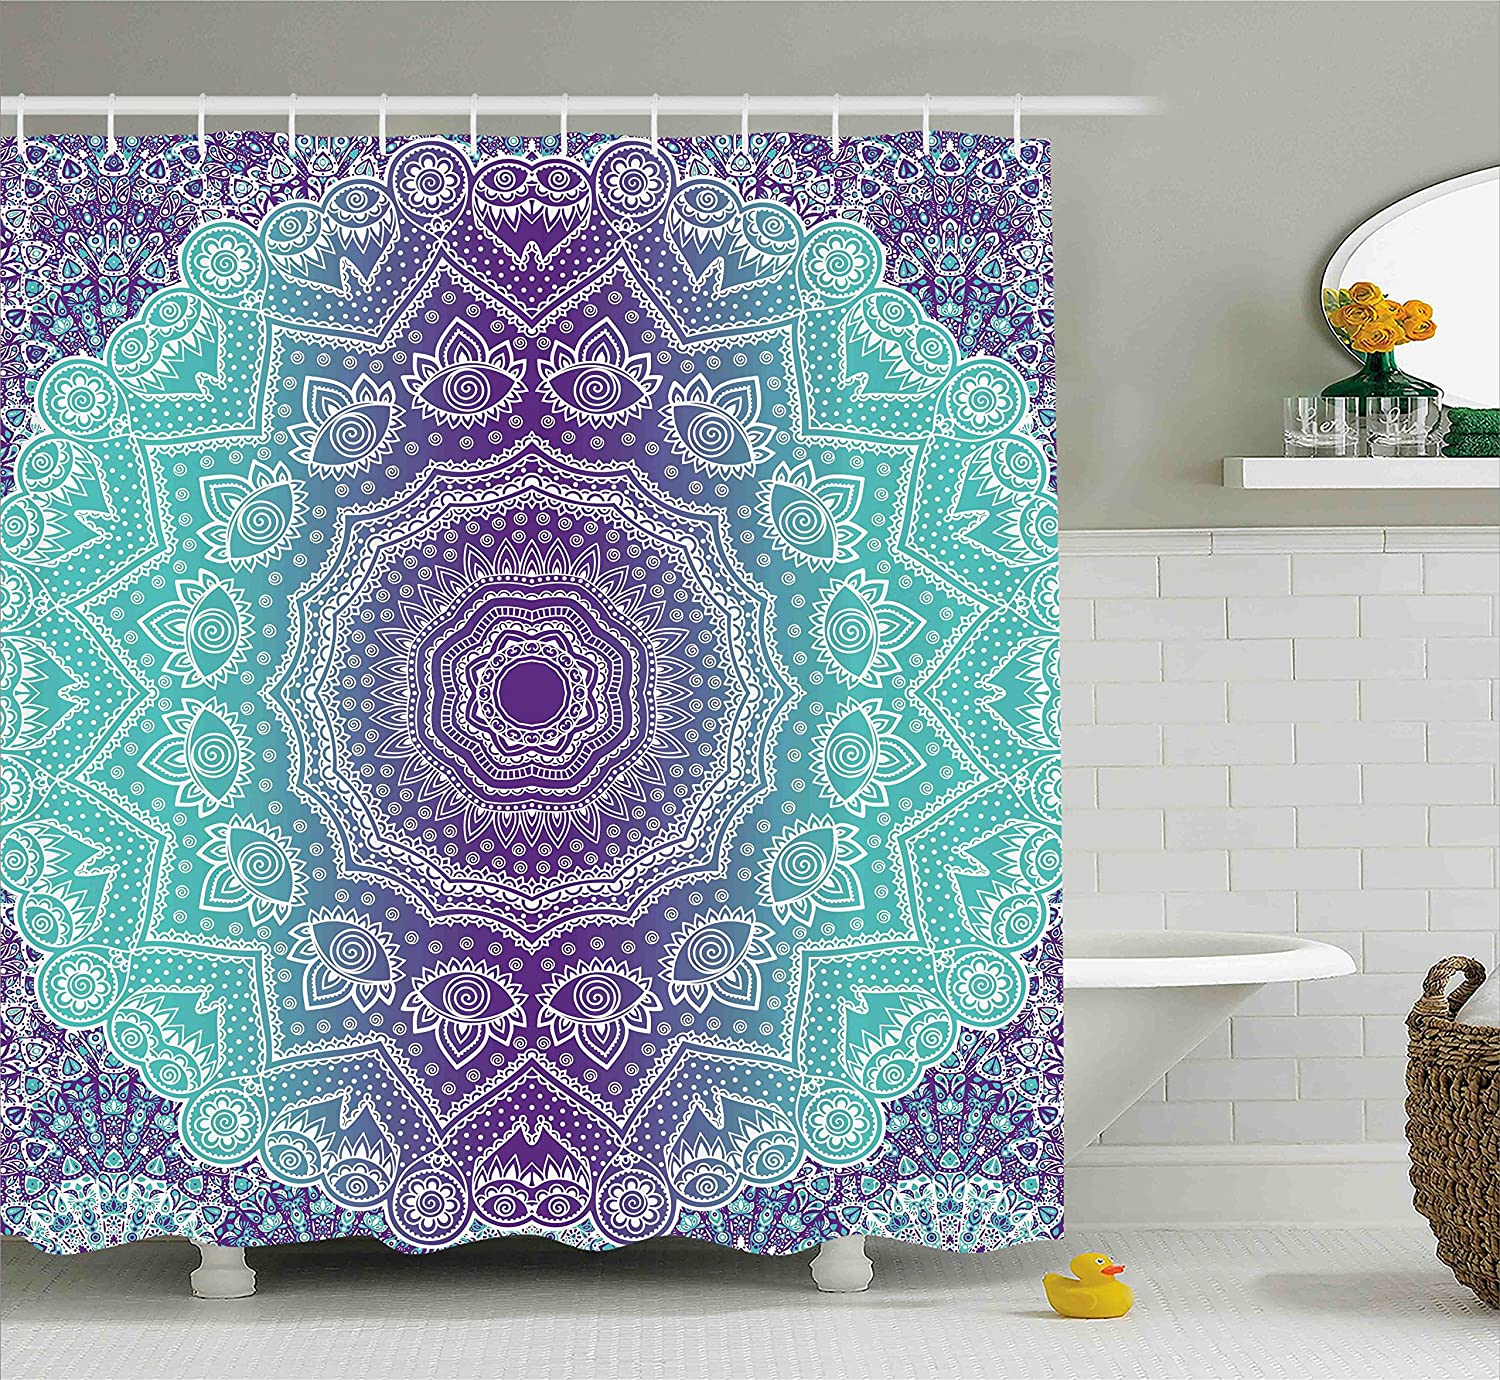 Ambesonne Purple And Turquoise Shower Curtain Hippie Ombre Mandala Inner Peace Meditation With Ornamental Art Fabric Bathroom Decor Set Hooks